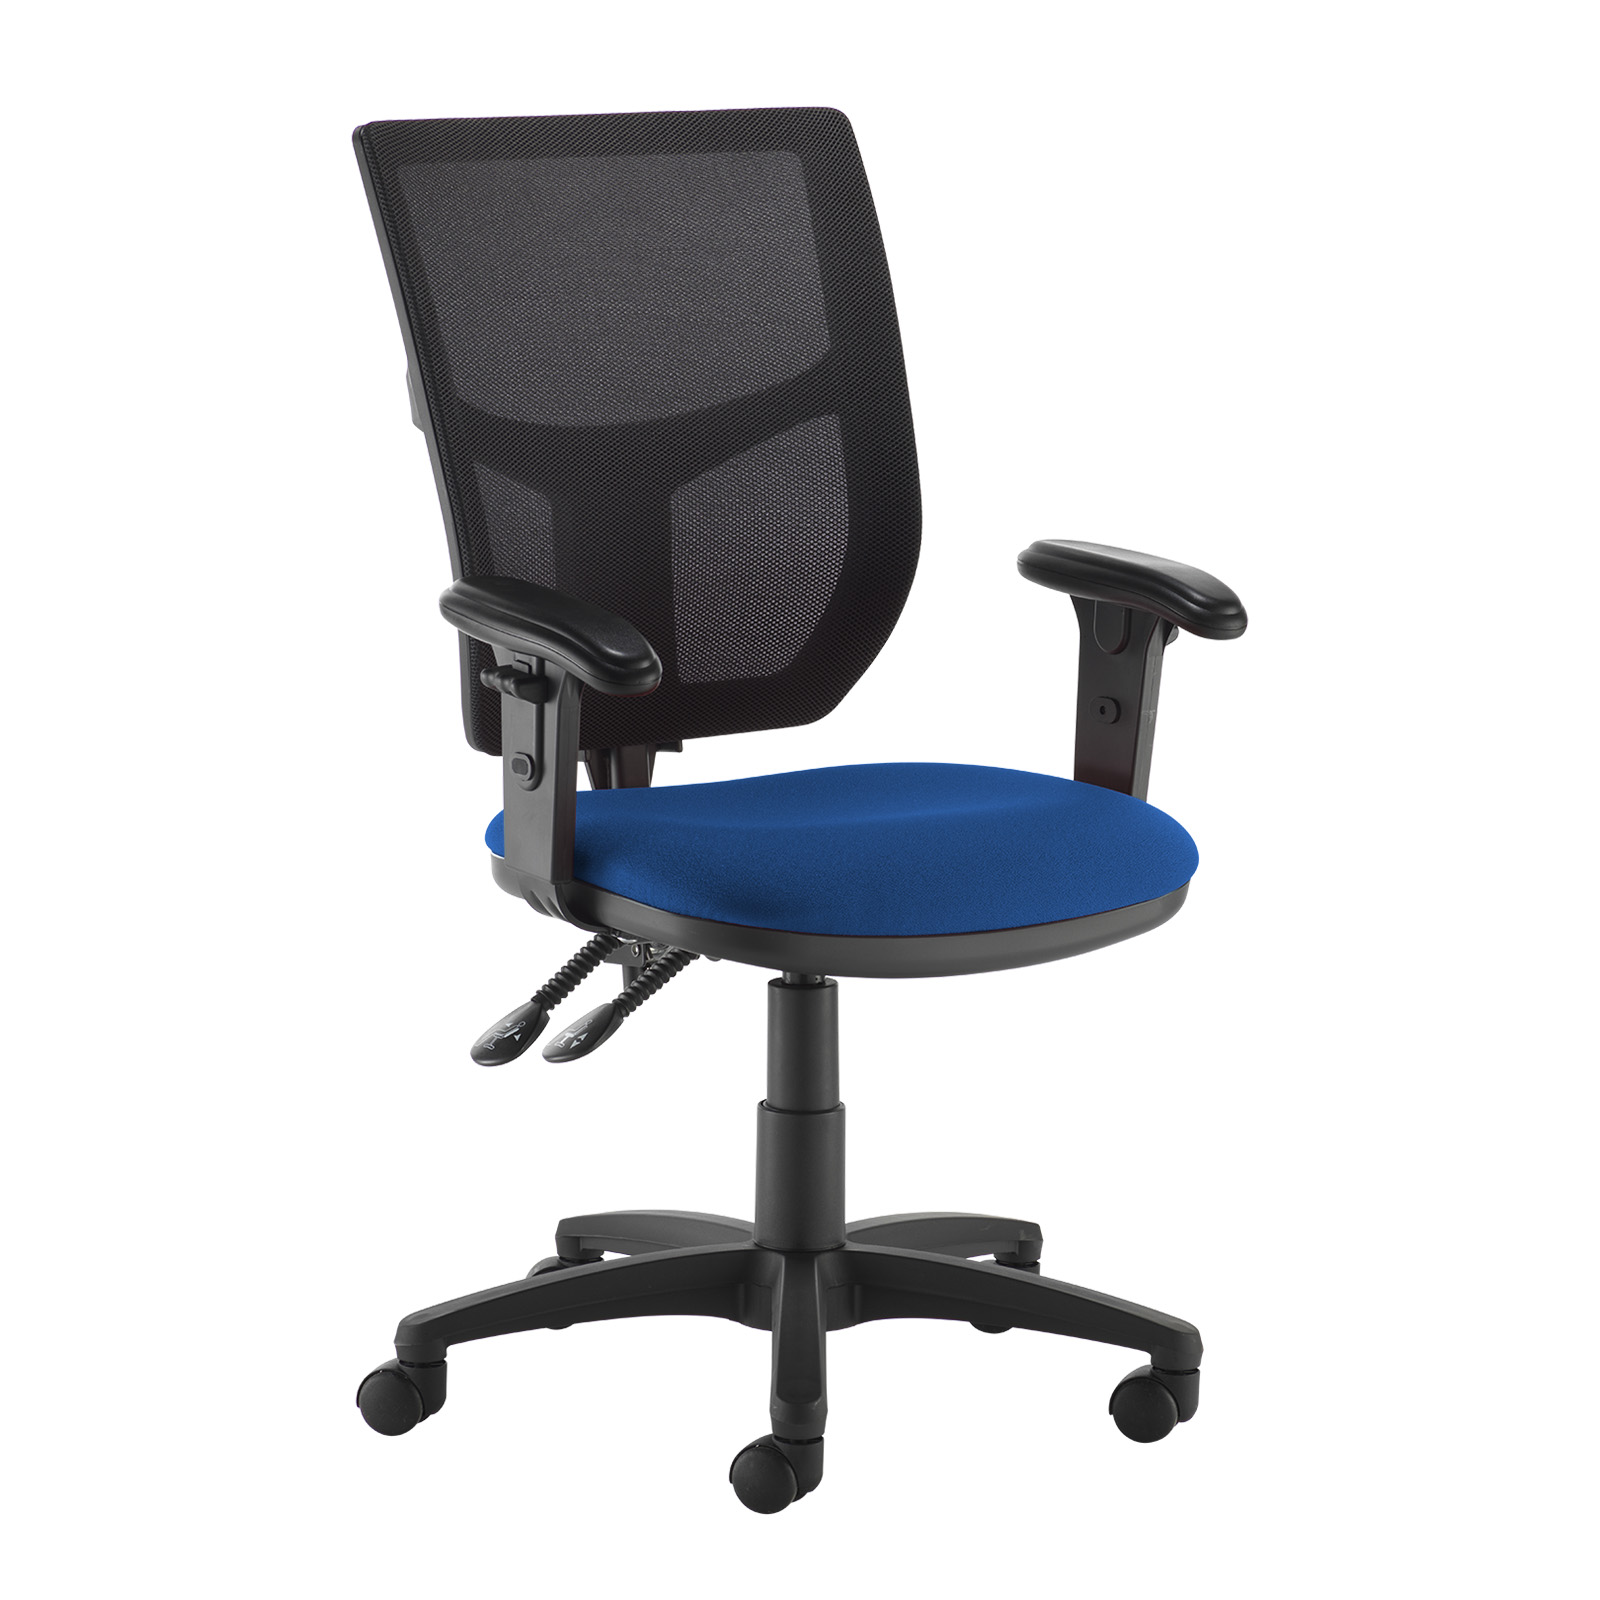 Desk Chairs Altino 2 lever high mesh back operators chair with adjustable arms - blue